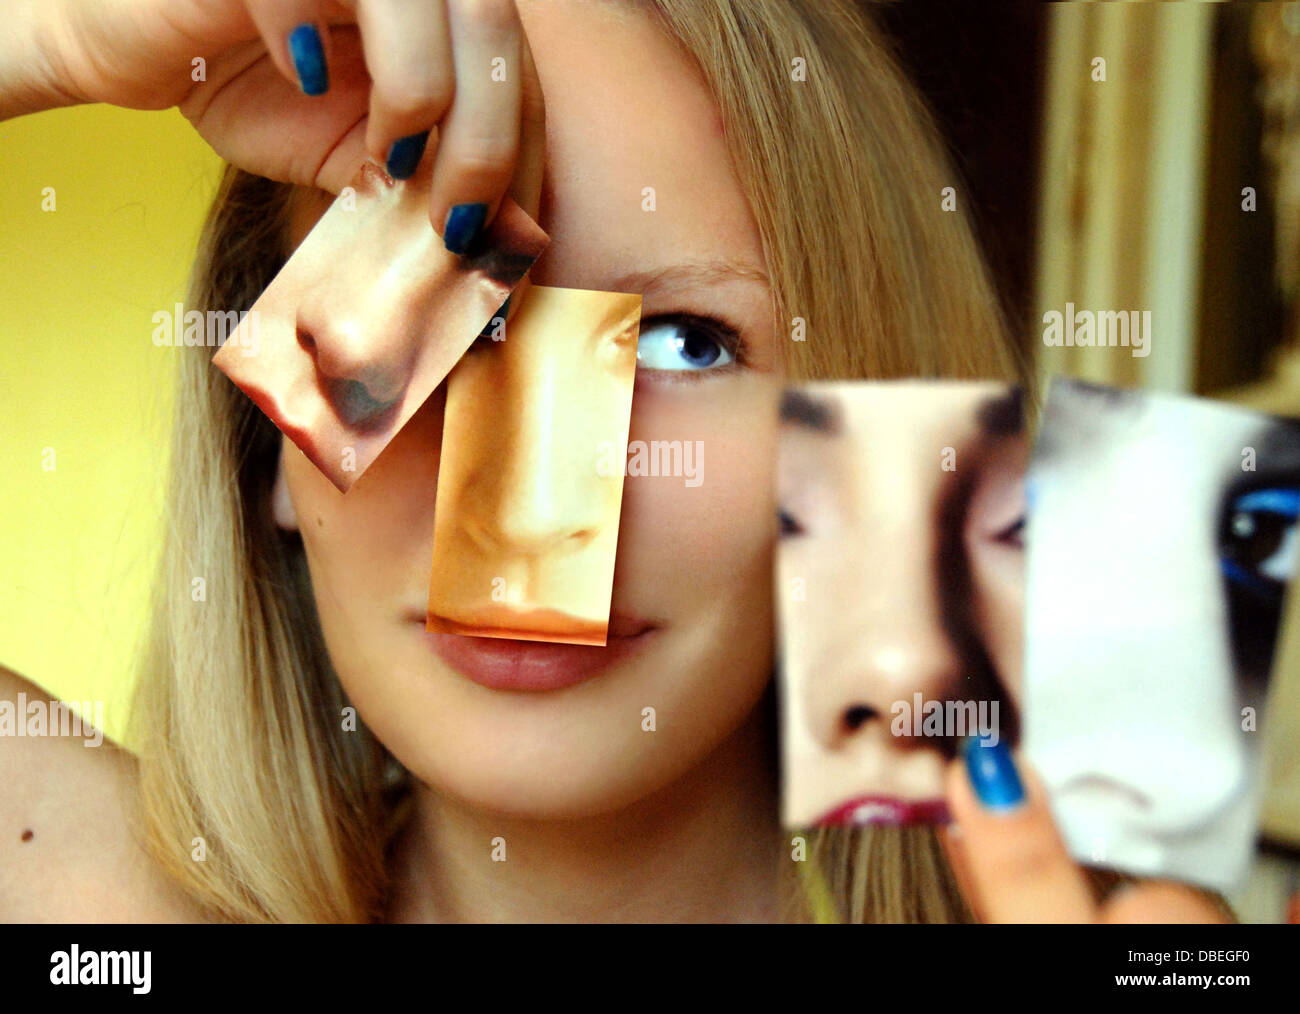 Pick Your Nose, a woman picks out her favorite nose among magazine cutouts for a nose job plastic surgery - Stock Image